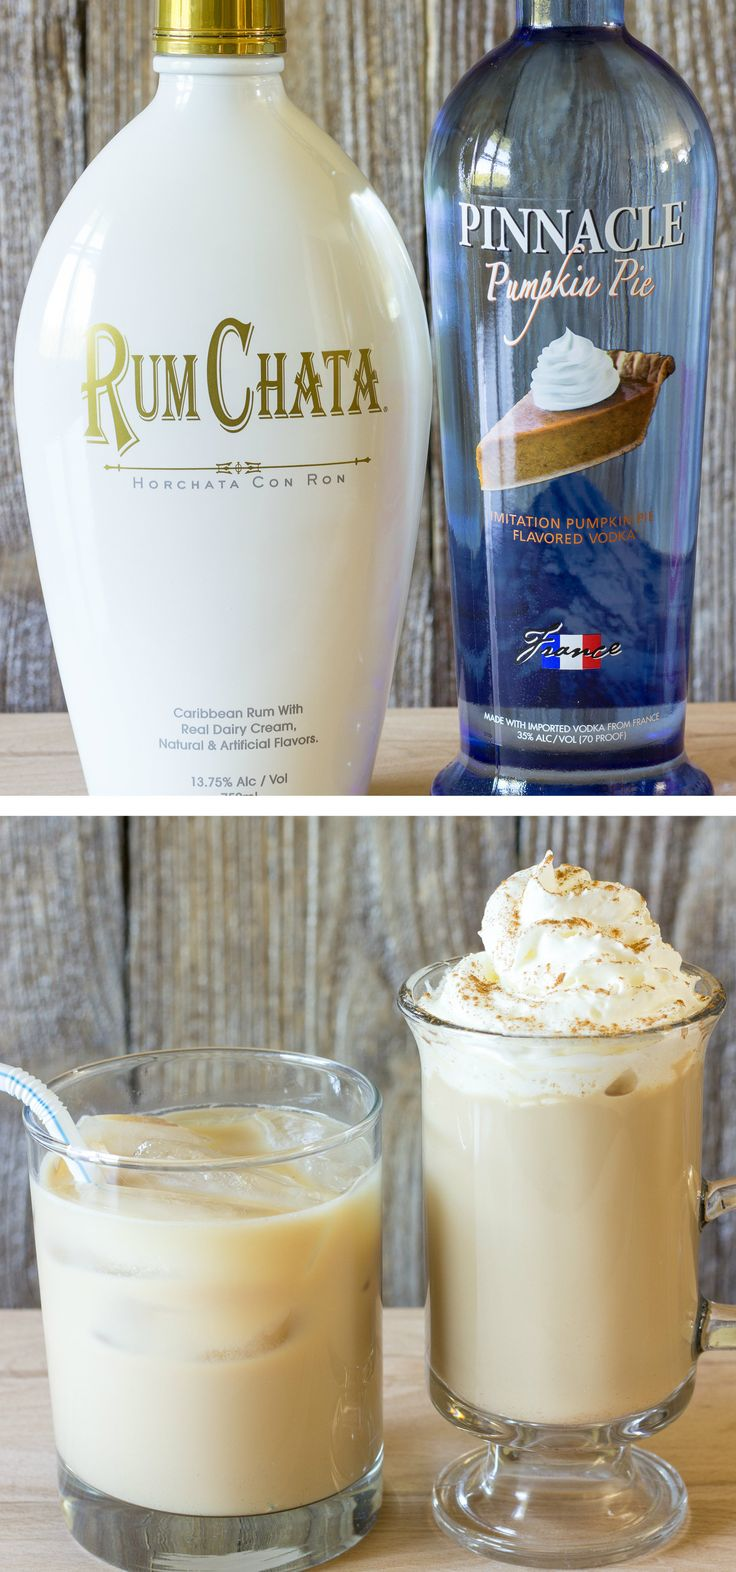 RumChata and pumpkin pie vodka are the secret ingredients to this amazing fall cocktail, the drunken punk'n latte. Serve hot with whipped cream or over ice.